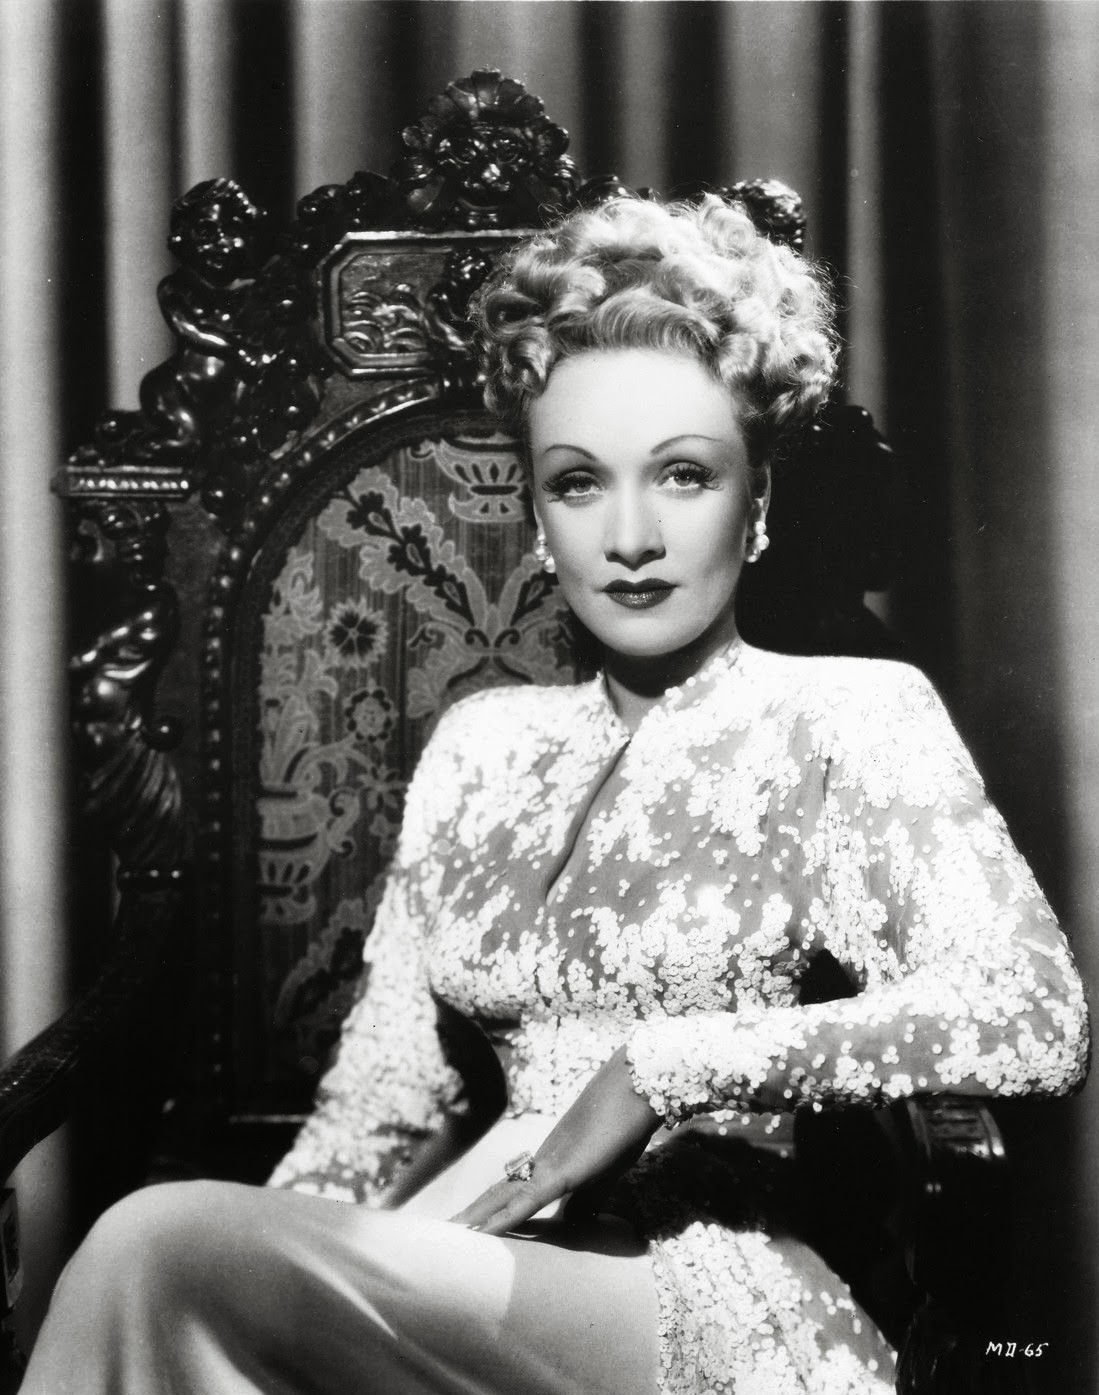 Marlene Dietrich Annex2: It's The Pictures That Got Small ...: THE THURSDAY GLAMOUR 15